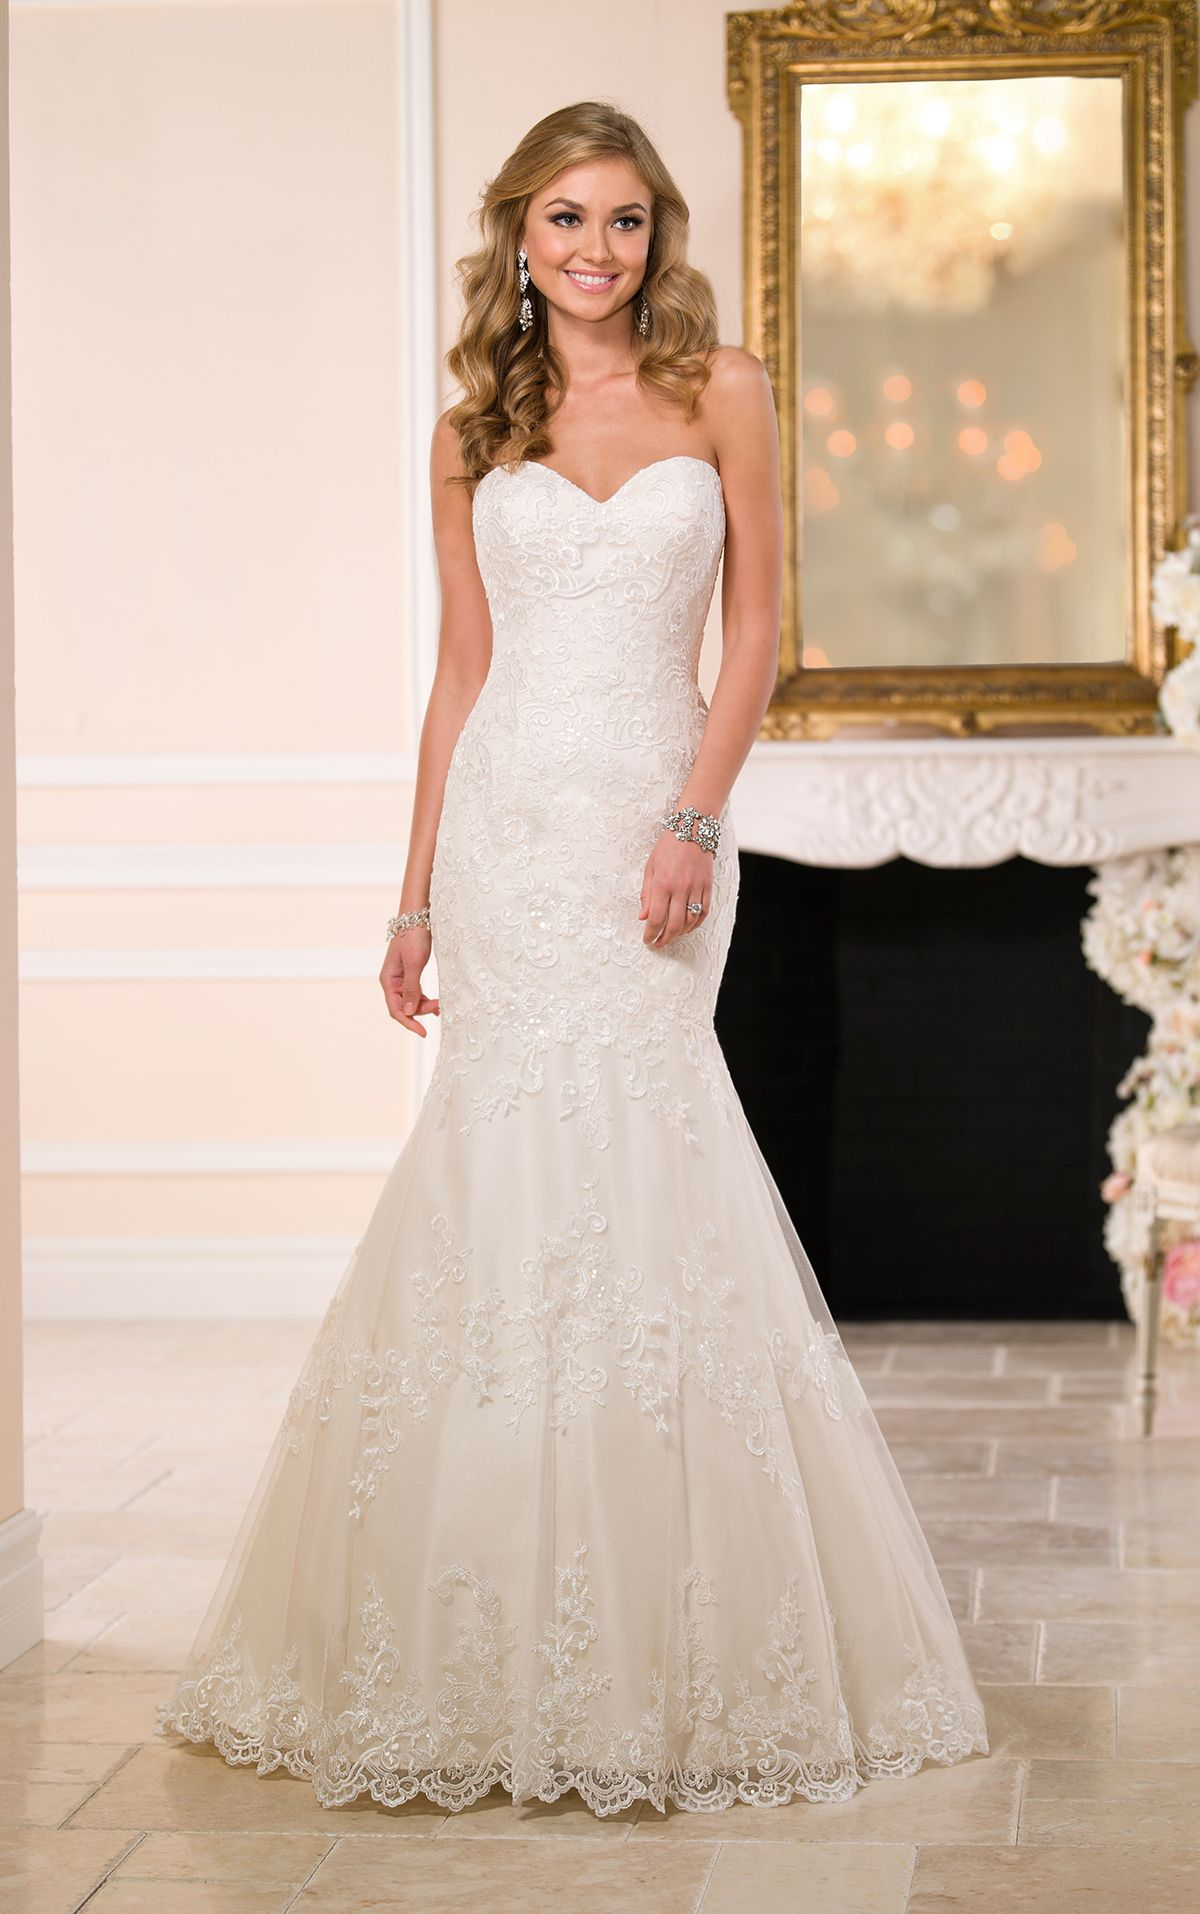 Wedding Dress | Stella york, Wedding dress and Wedding